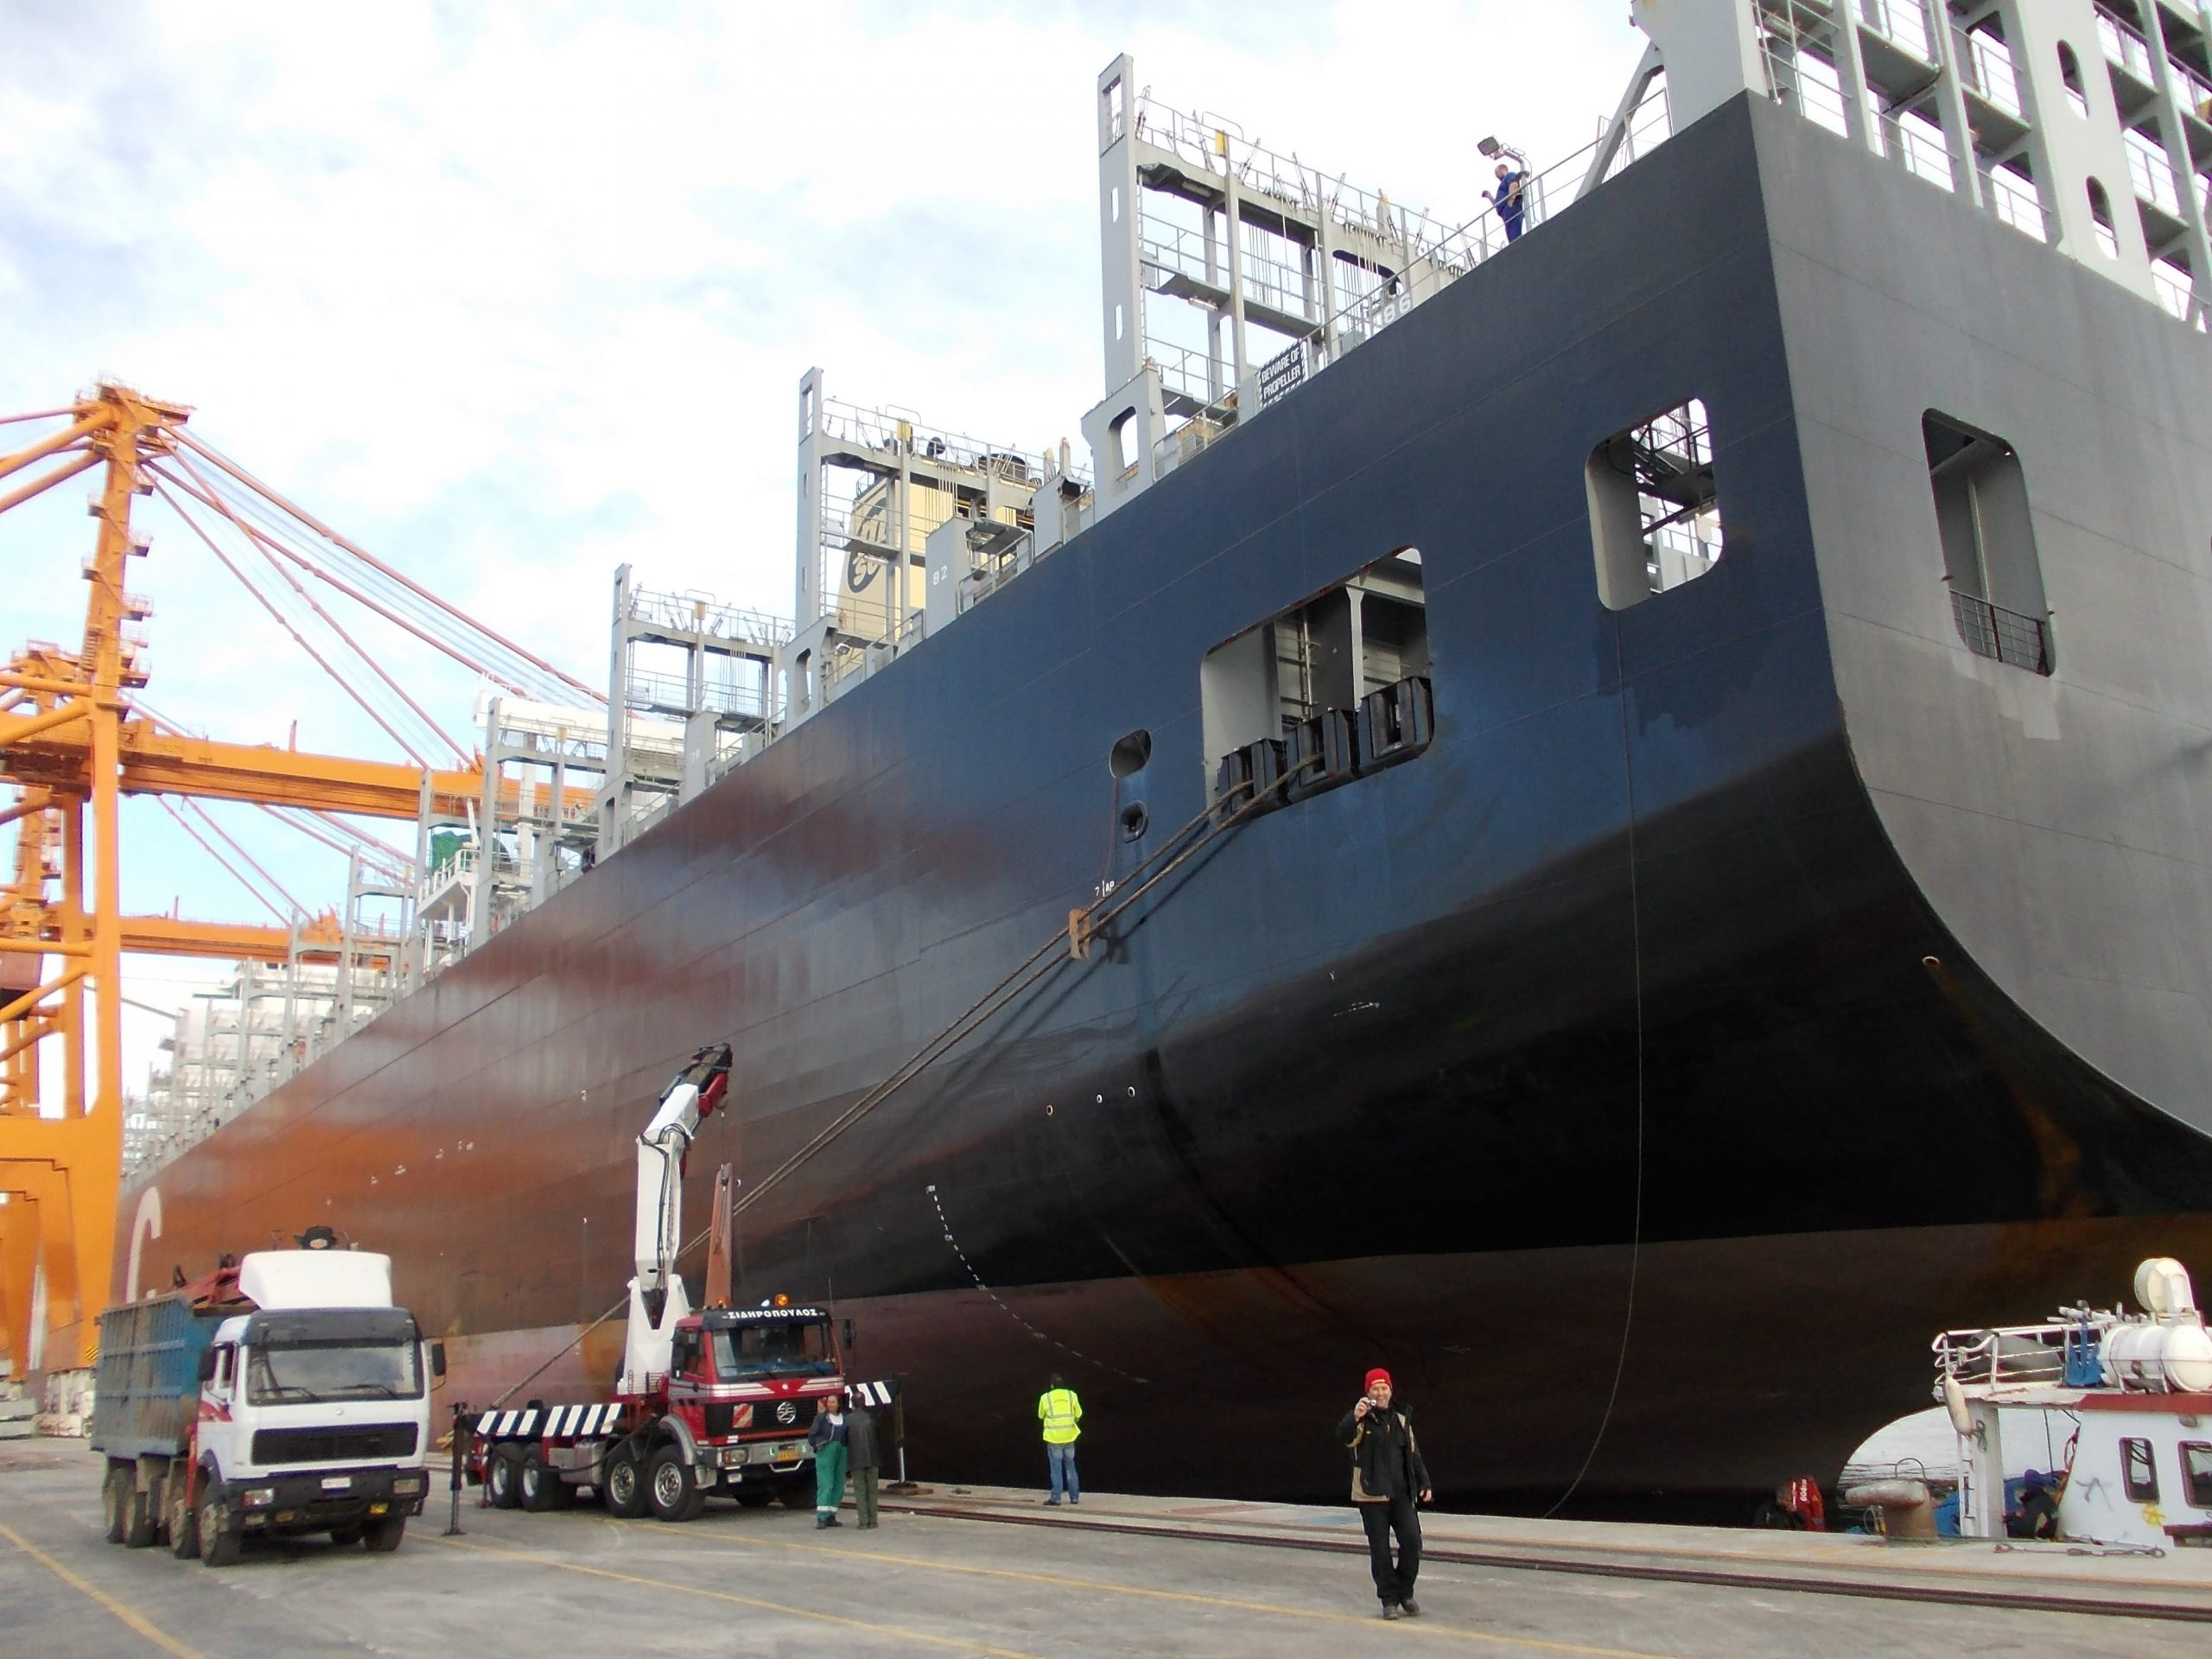 Ship for shipstabilizer removal